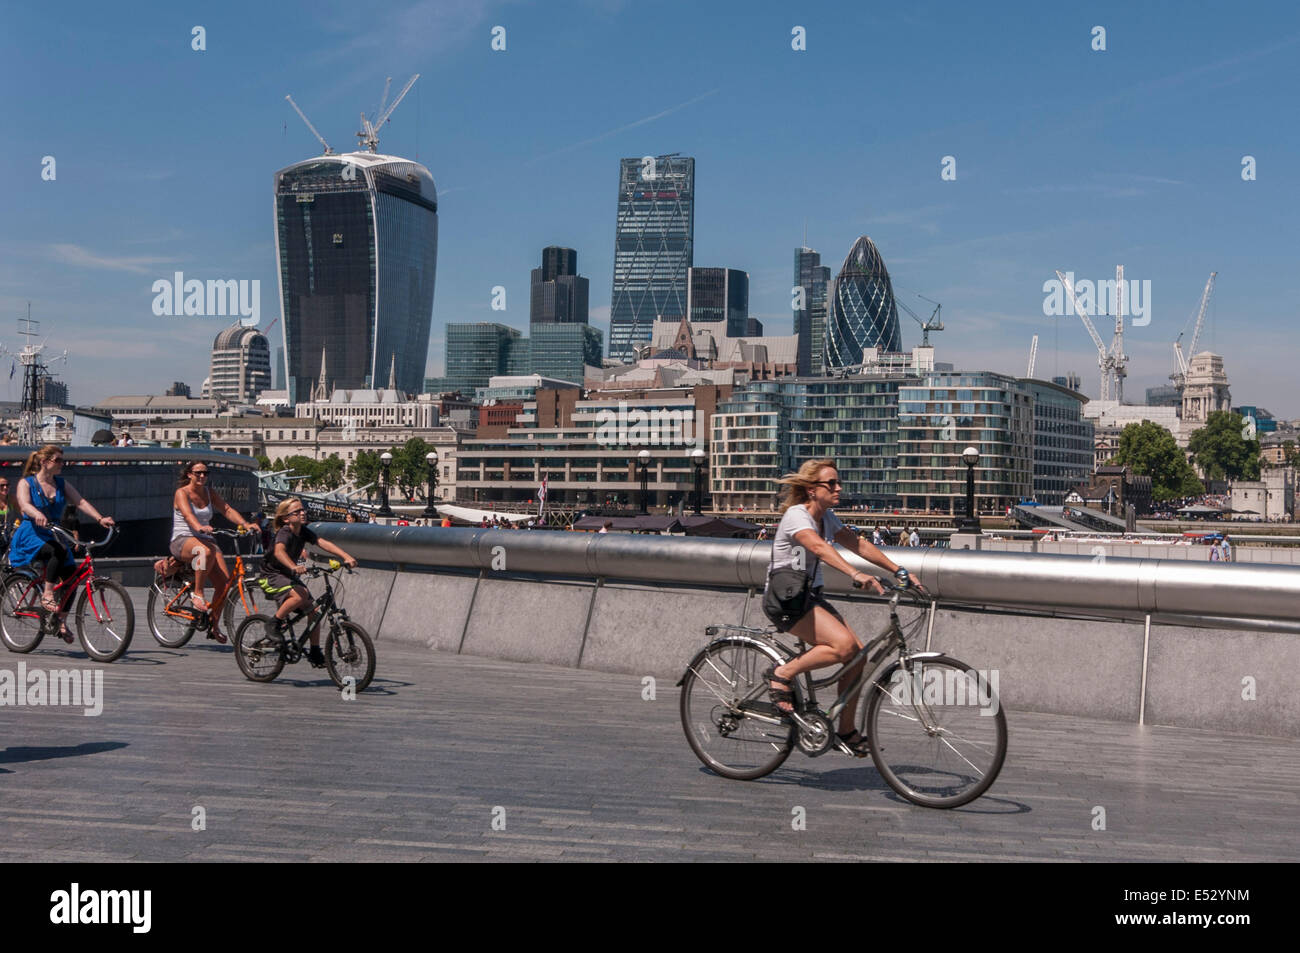 London, UK. 18th July, 2014. Weather:  The capital experiences the hottest day of the year so far as temperatures Stock Photo